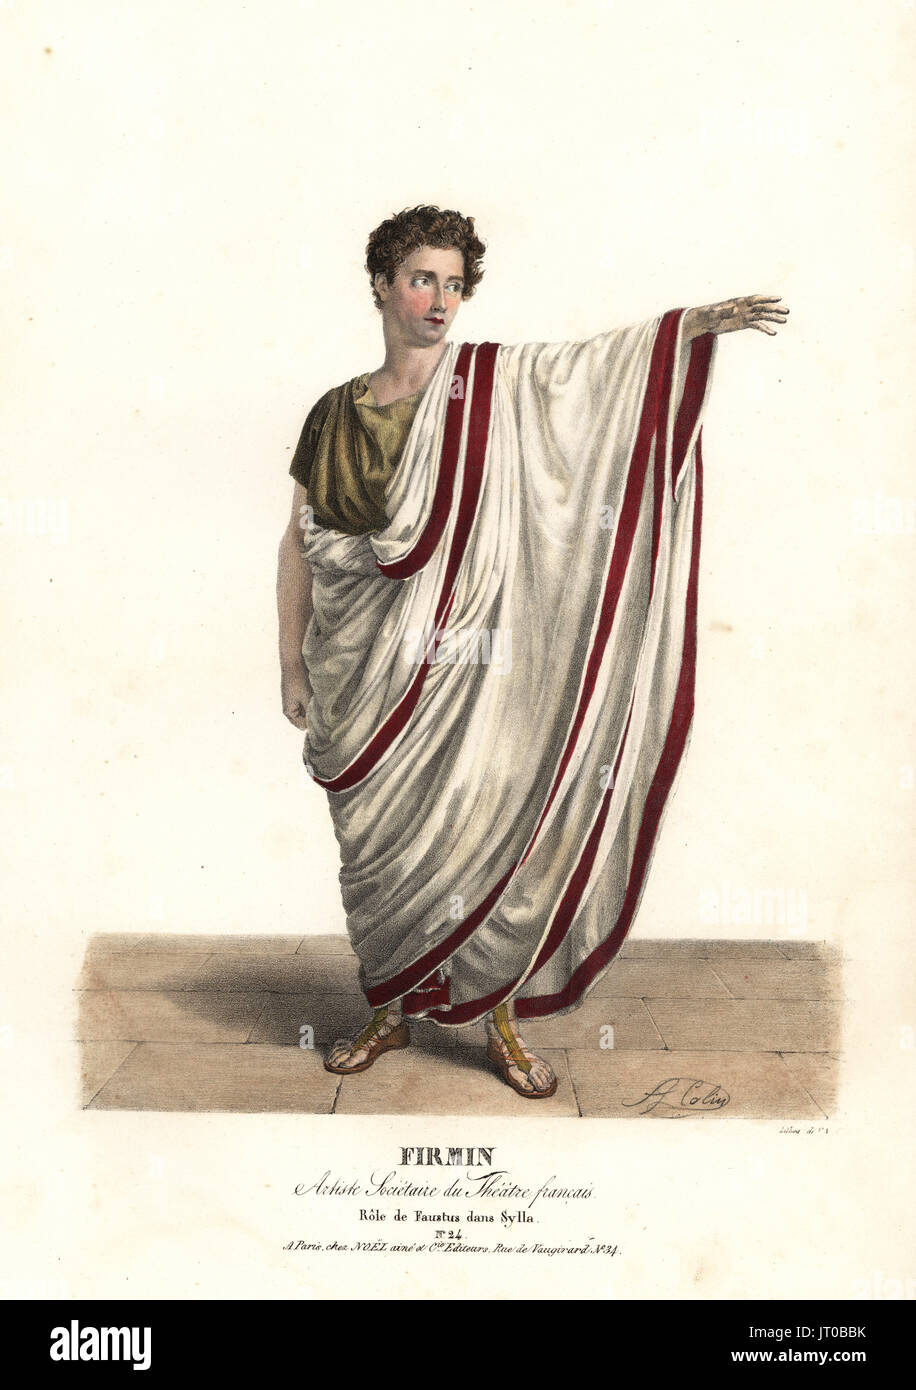 Jean-Baptiste Firmin as Faustus in the tragedy Sylla by Victor Joseph Etienne de Jouy, Theatre Francais, 1826. Handcoloured lithograph by F. Noel after an illustration by Alexandre-Marie Colin from Portraits d'Acteurs et d'Actrices dans different roles, F. Noel, Paris, 1826. - Stock Image